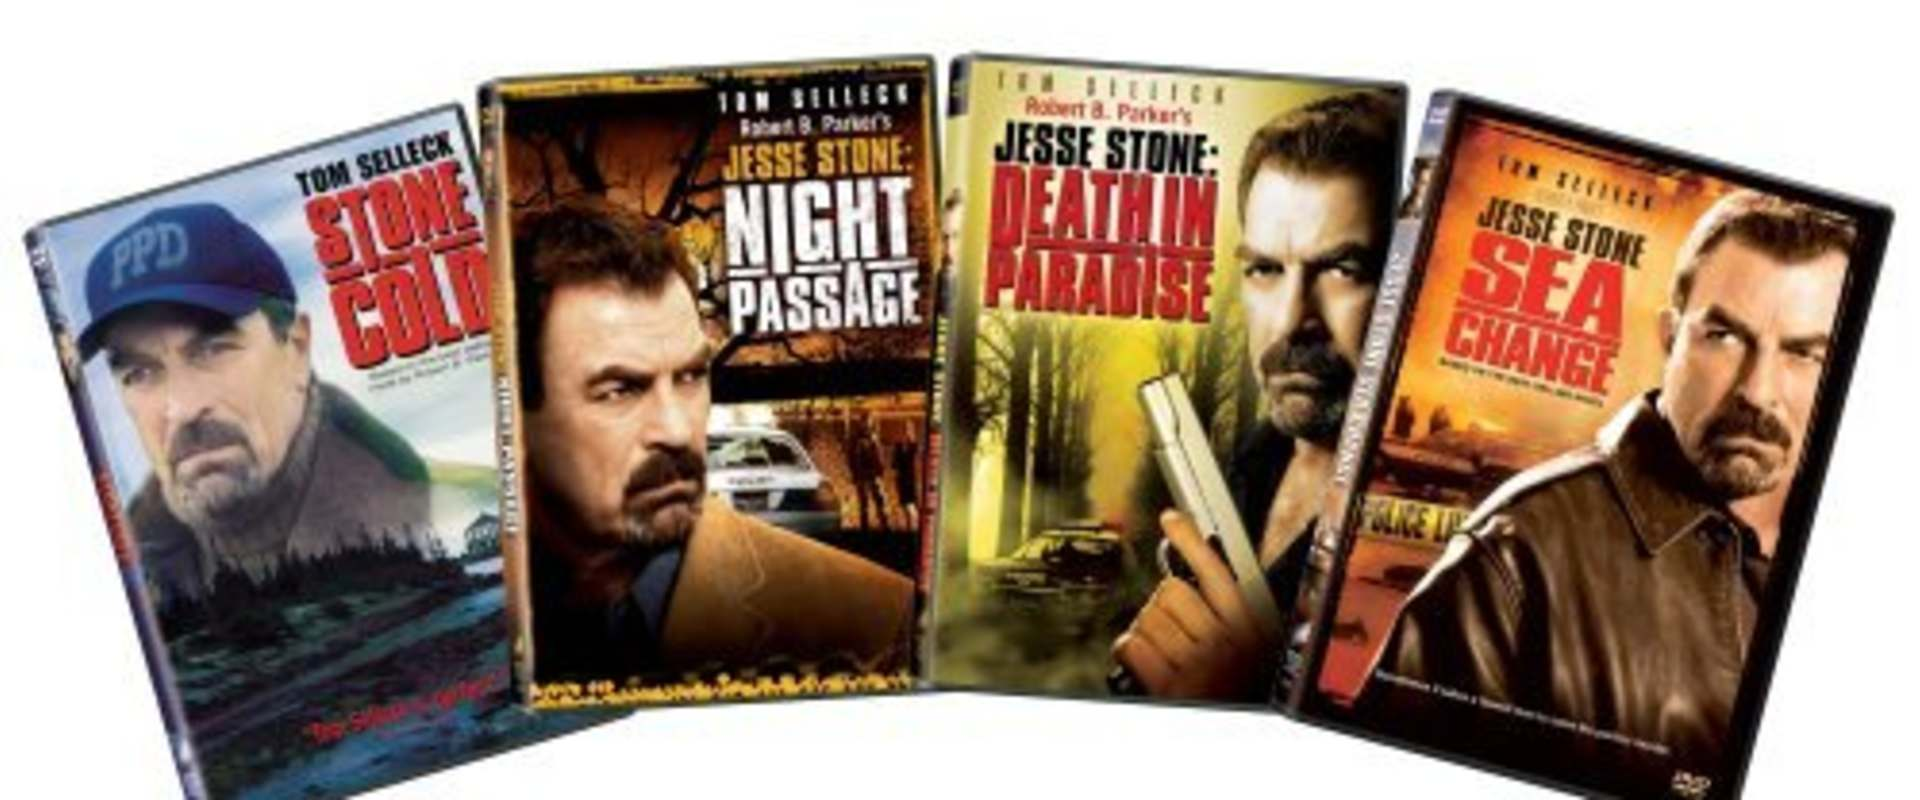 Jesse Stone: Stone Cold background 1